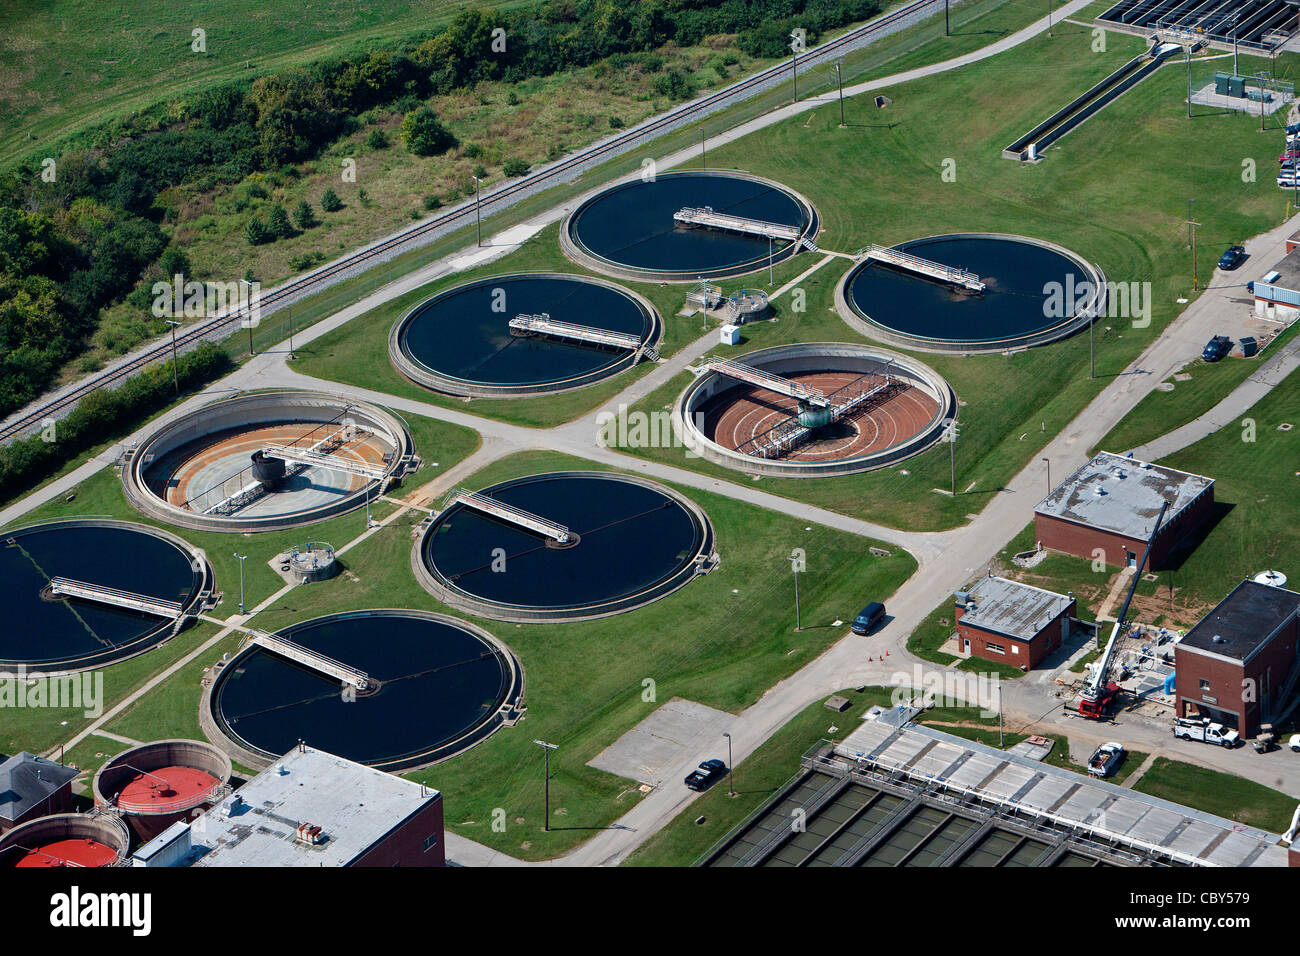 aerial photograph downtown waste water treatment plant, Lexington, Kentucky - Stock Image